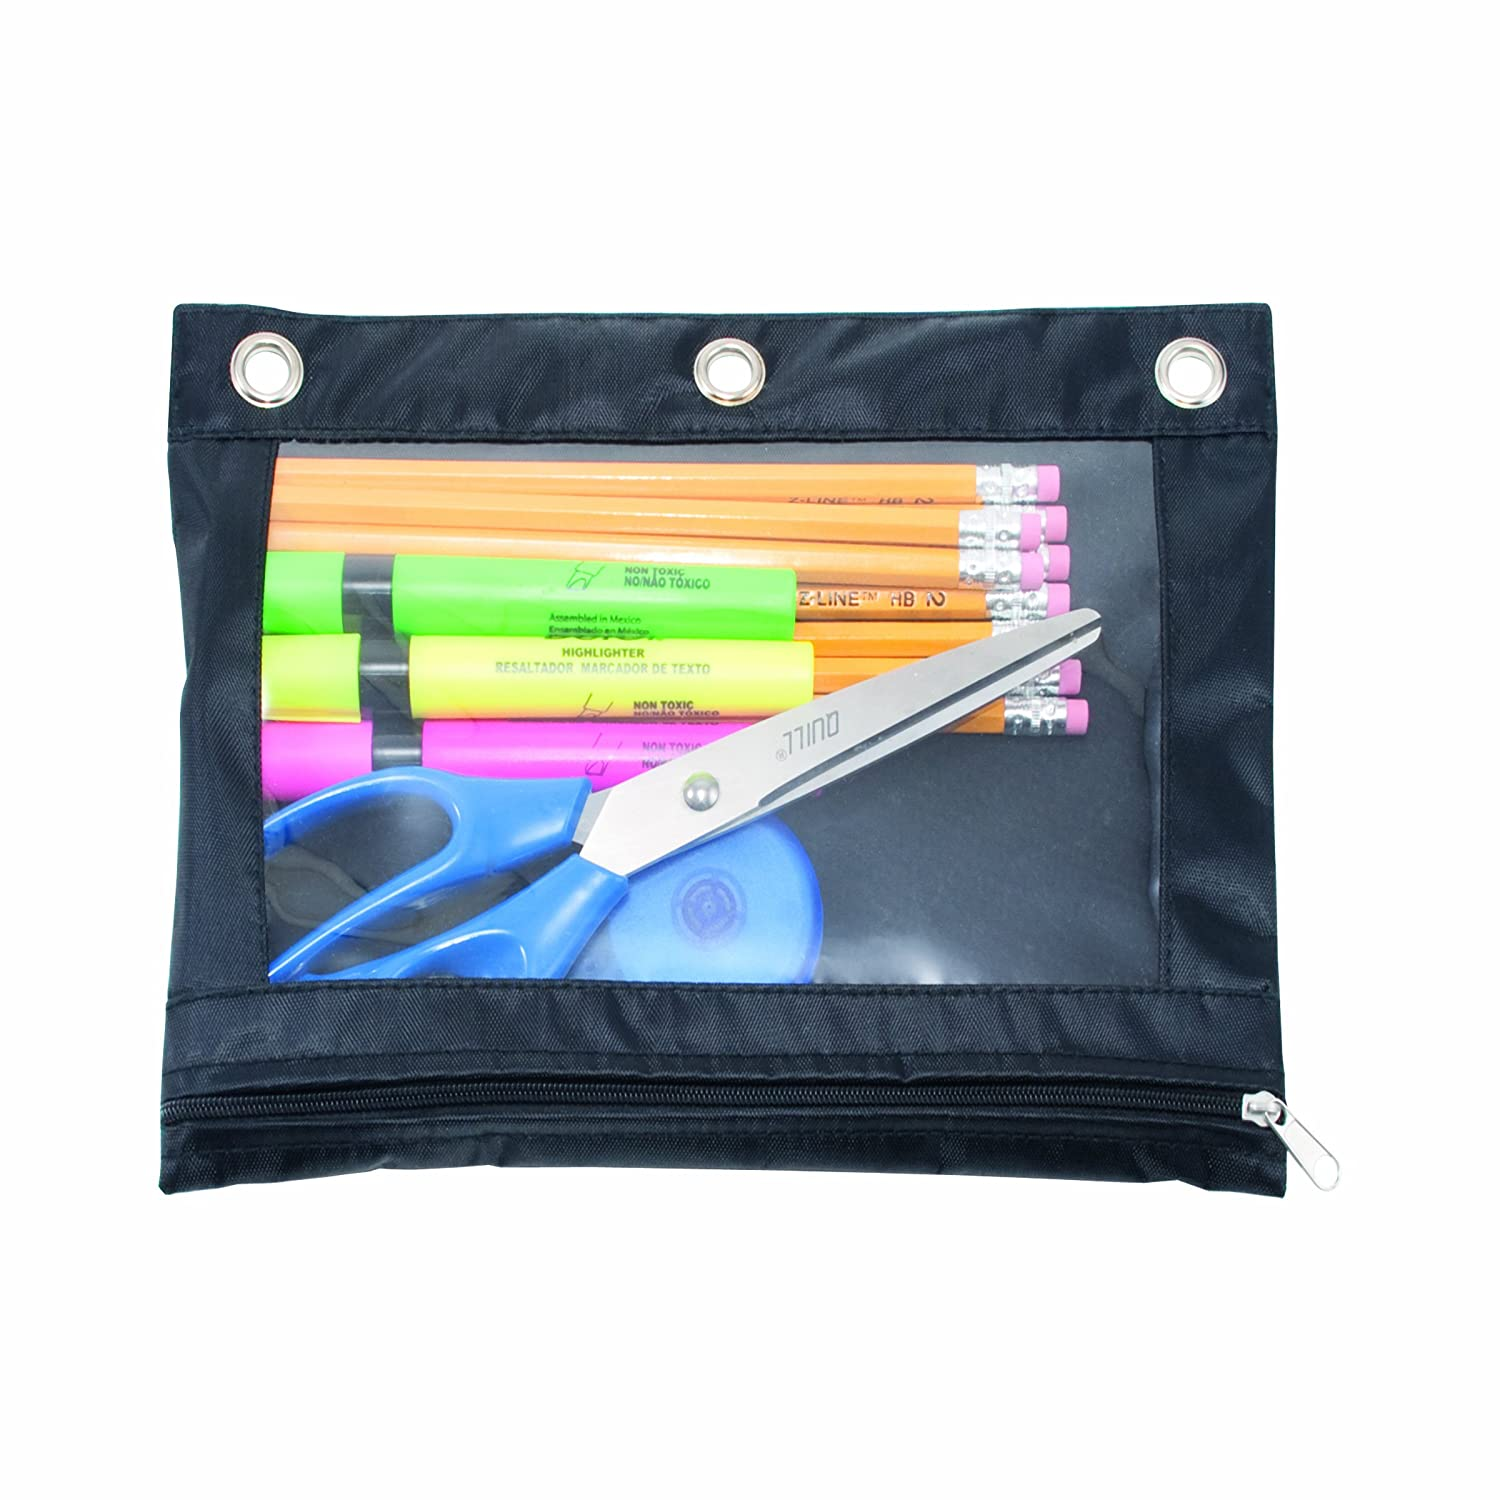 Pencil Bags with Zipper Pencil Pouch for 3 Ring Binder 4 Color Sooez Binder Pouch,Pencil Pouch 3 Ring Fabric Pencil Pouches with 2 Zipper 3 Hole Pencil Case Pencil Bags 3 Ring